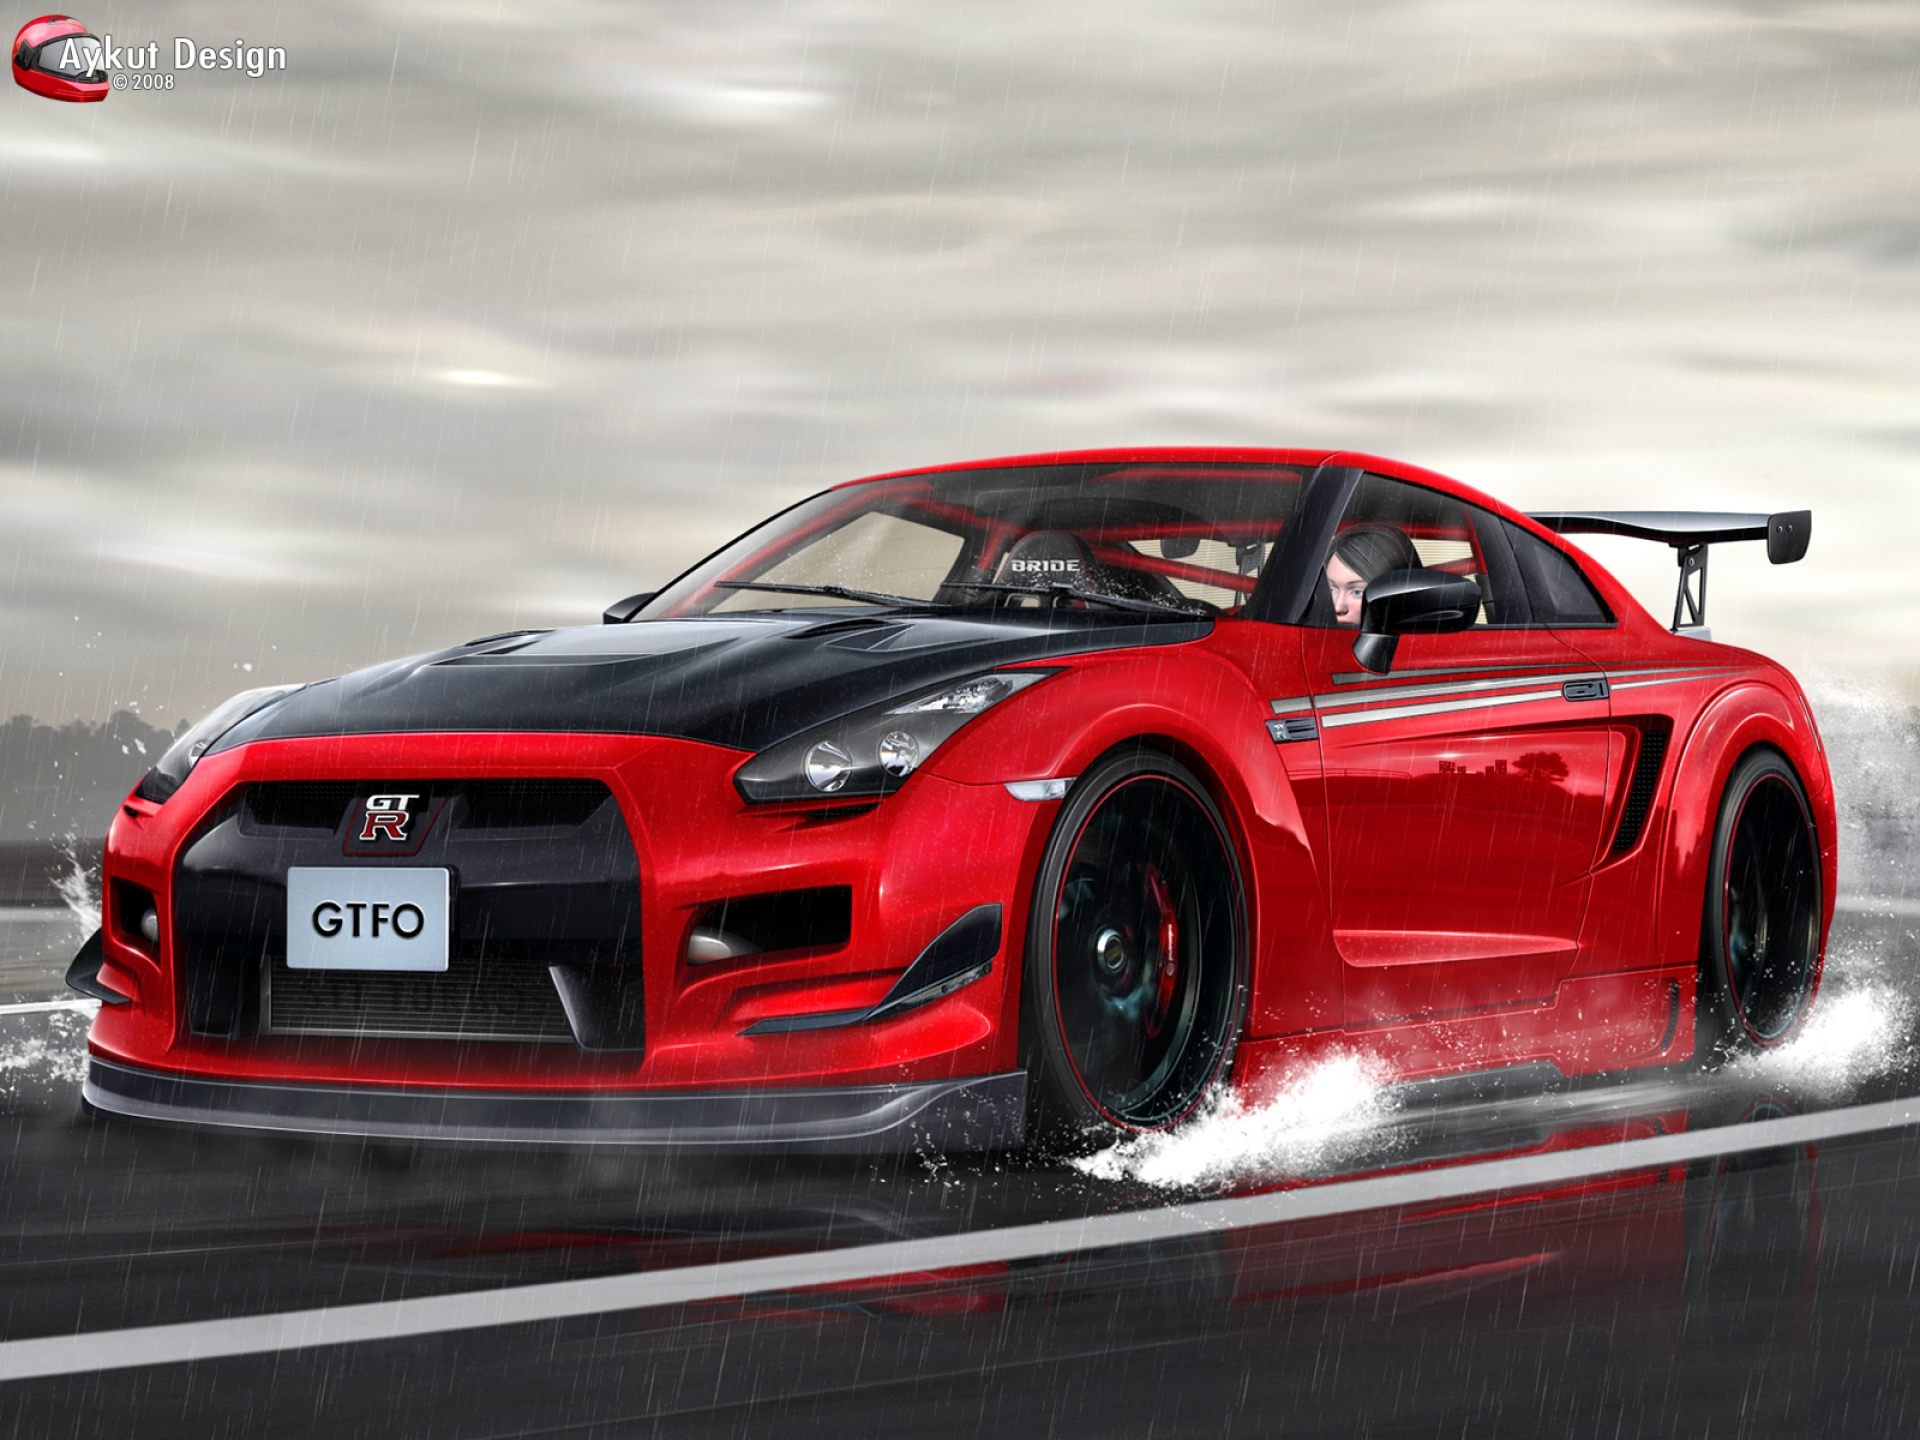 humphrey__13 images nissan gt-r wallpapers. hd wallpaper and